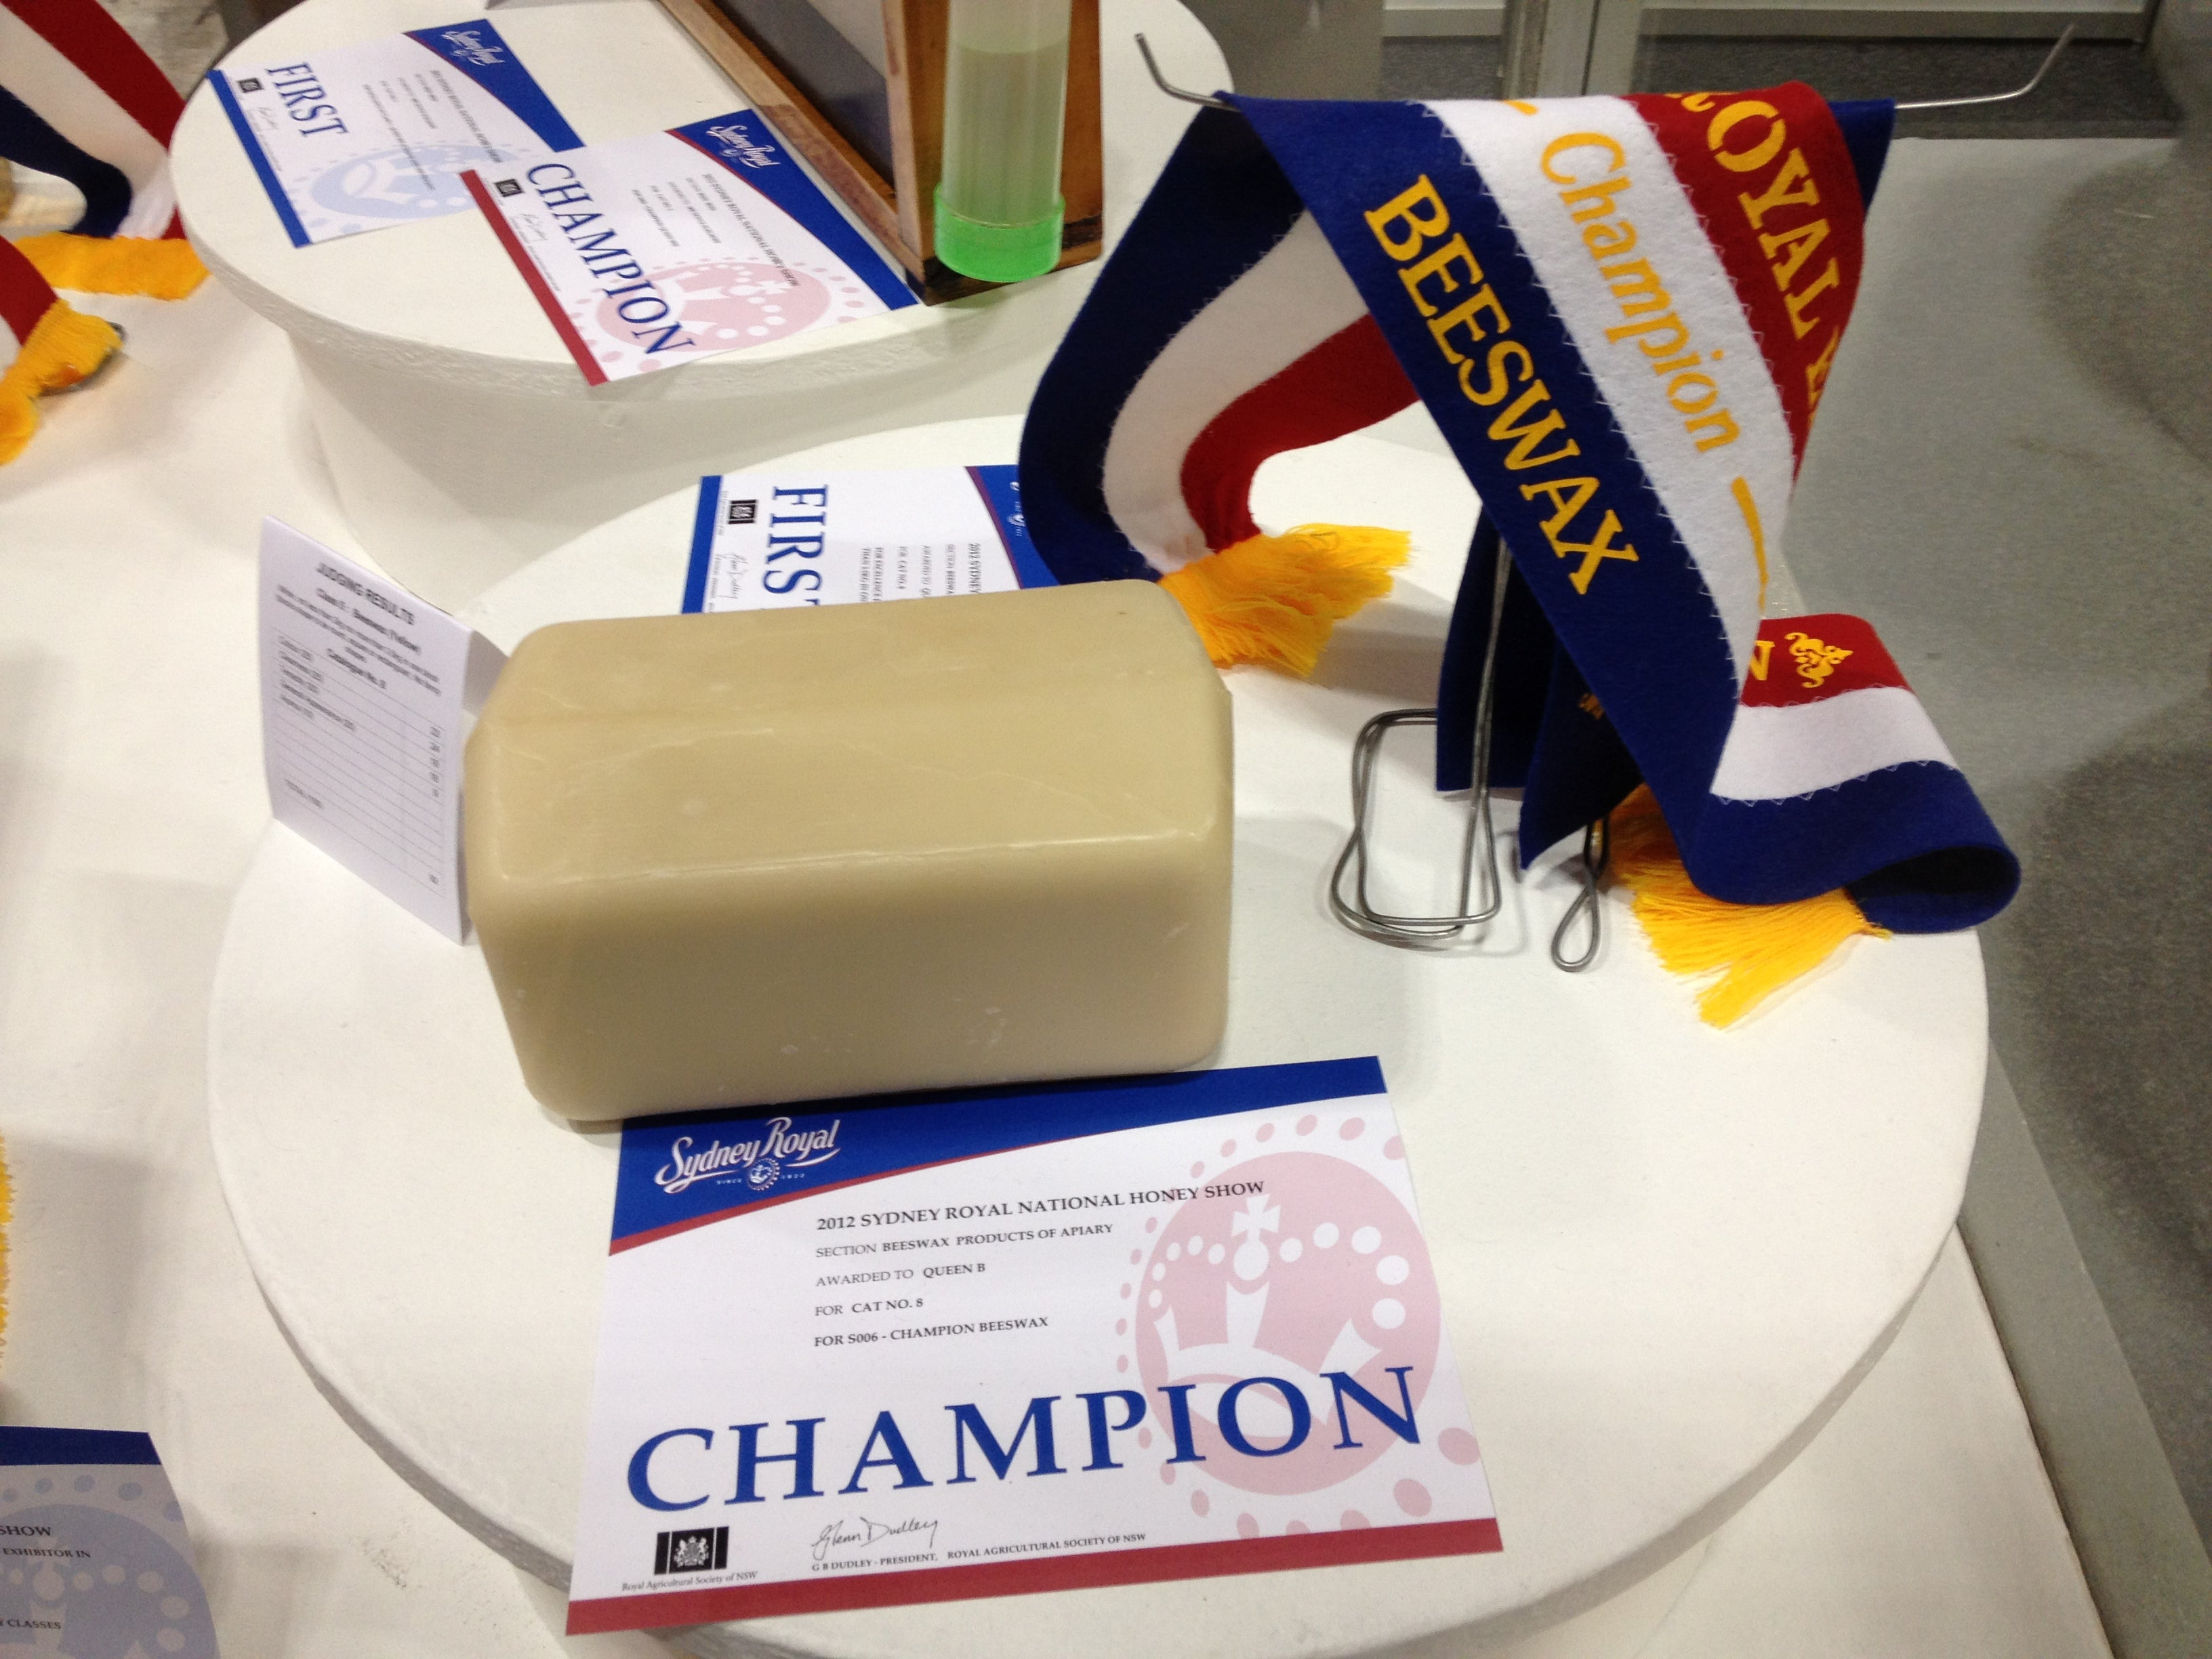 Champion Beeswax ribbon for Queen B at Royal Easter Show